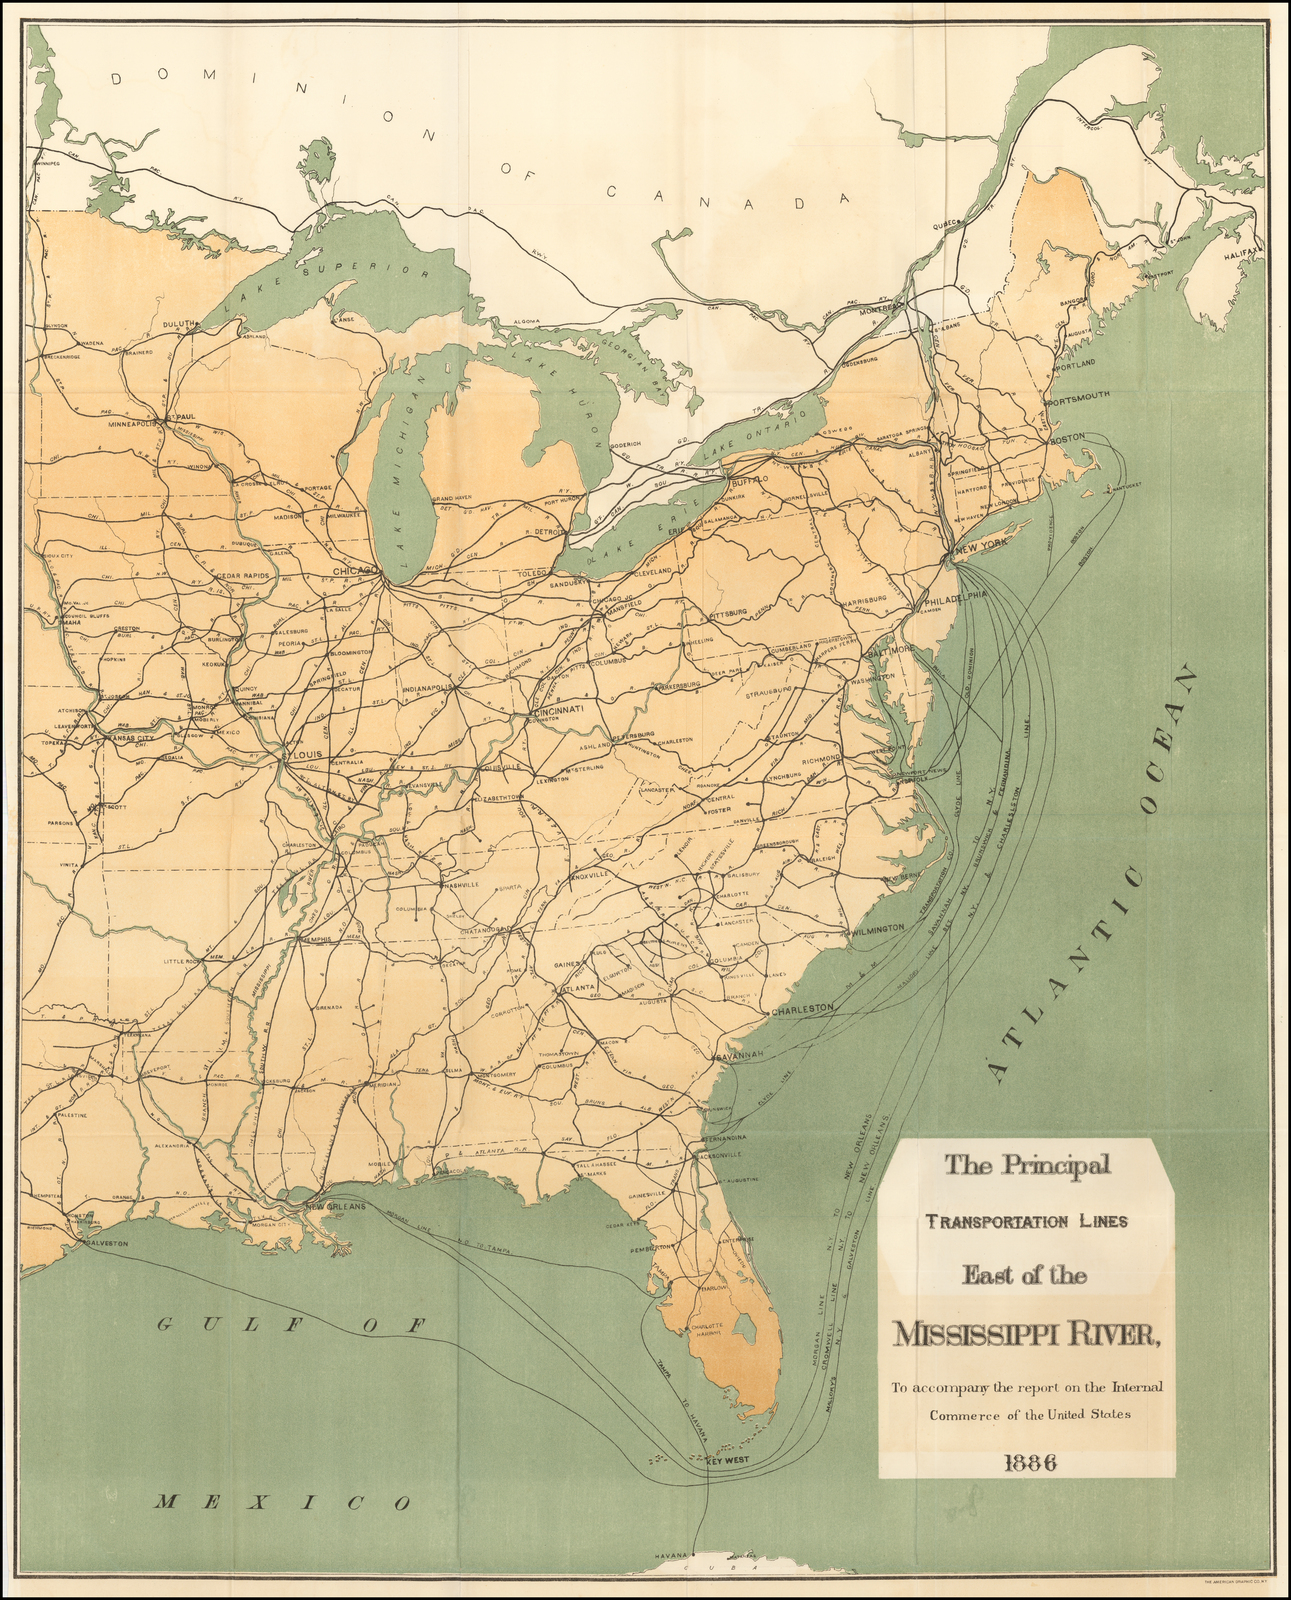 the principal transportation lines east of the mississippi river  to accompany the report on the